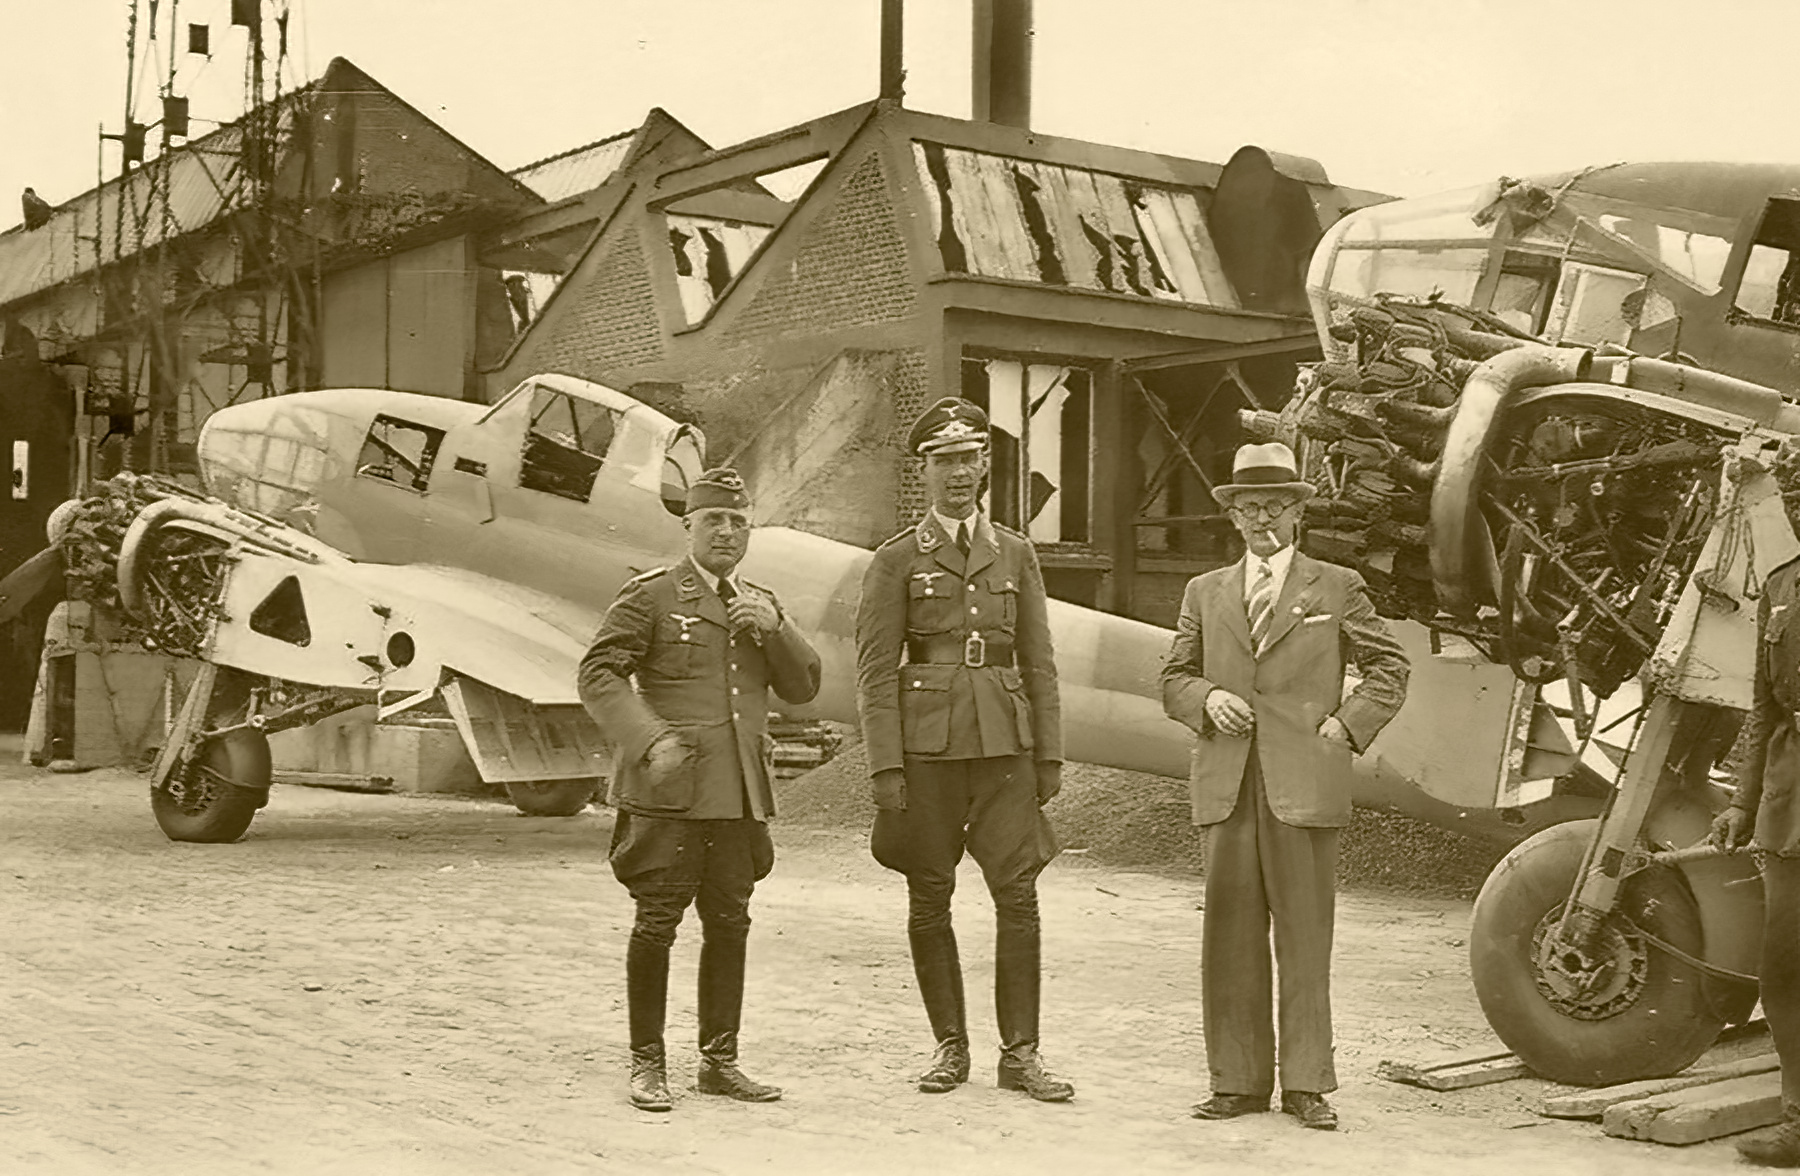 French Airforce Potez 63.11 being examined by Luftwaffe personel France 1940 ebay 01